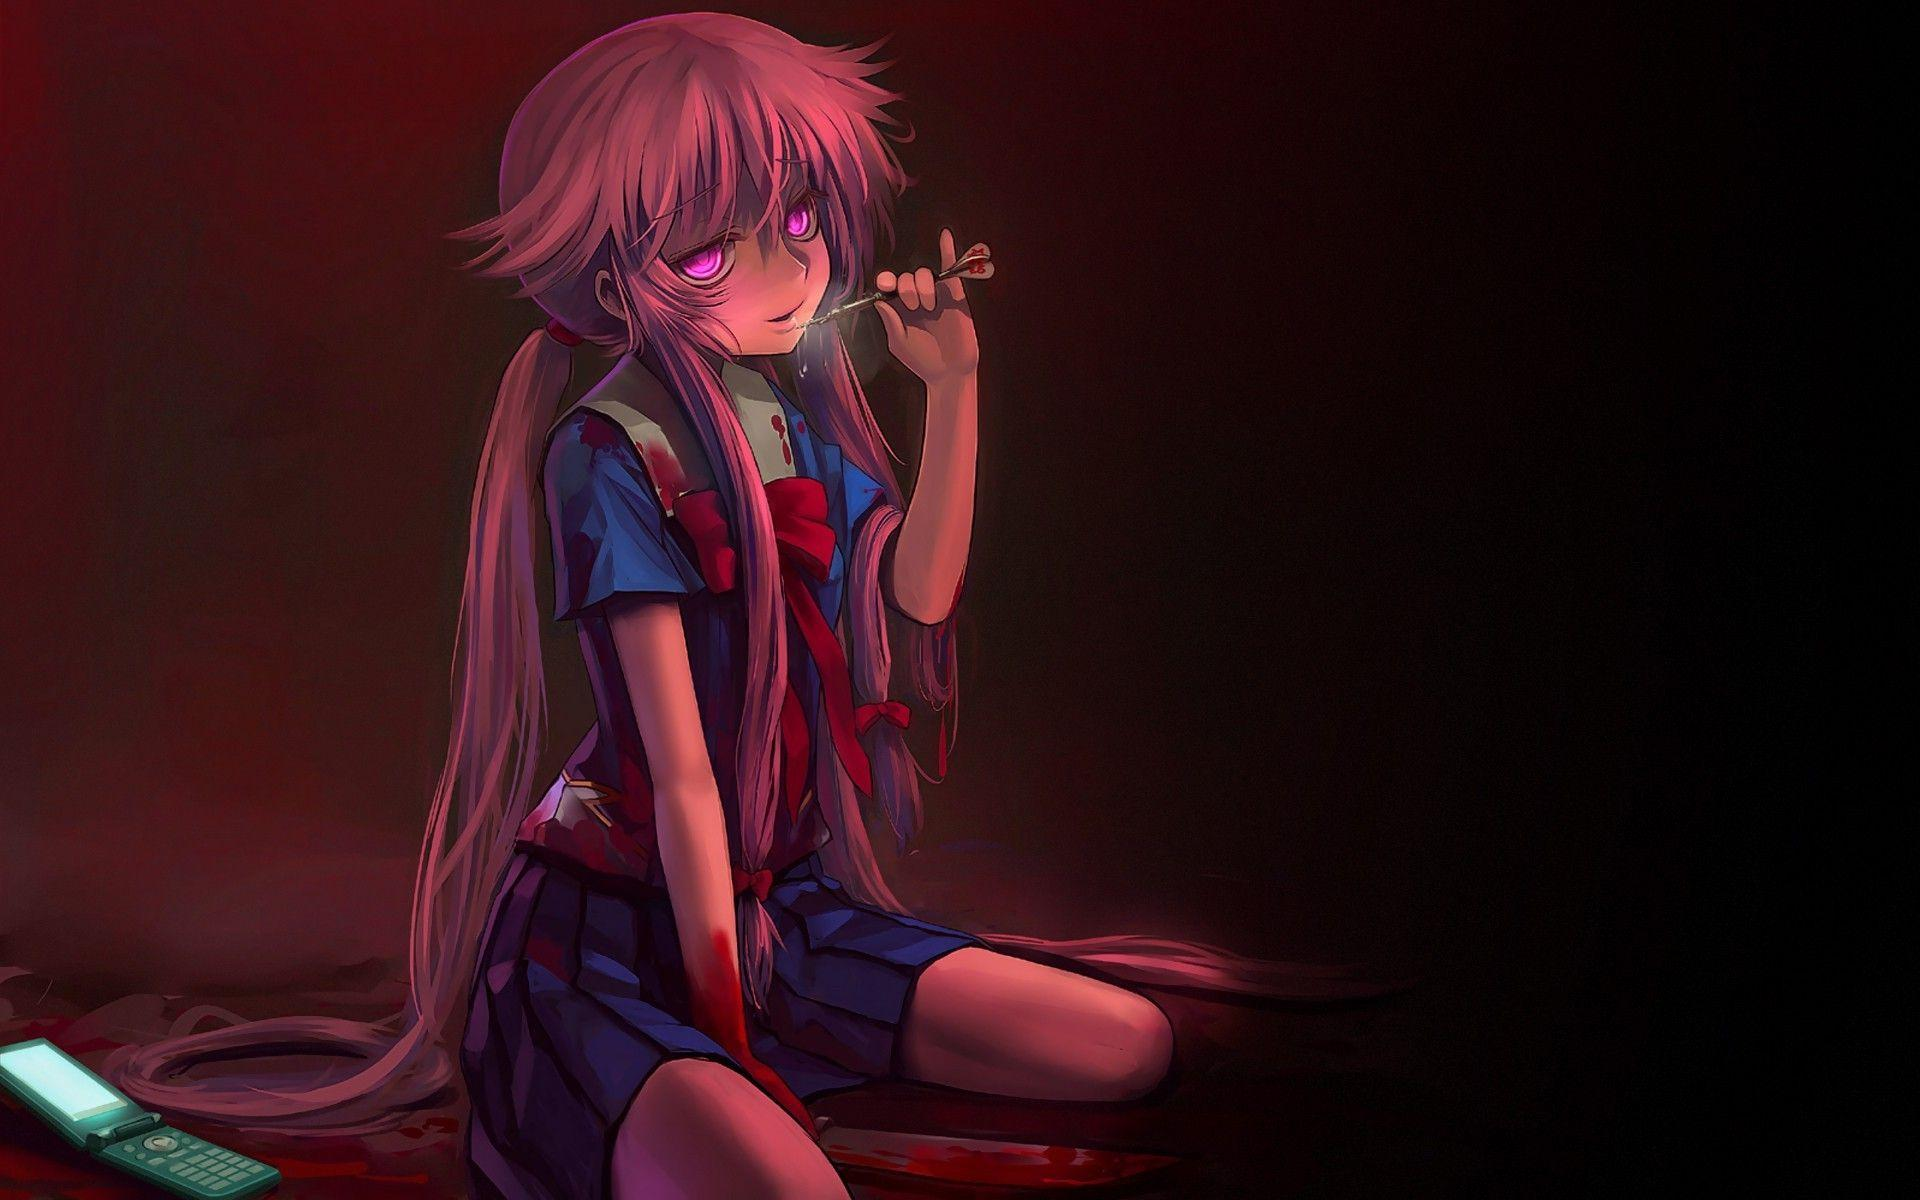 Yandere Anime Wallpapers   Top Yandere Anime Backgrounds 1920x1200